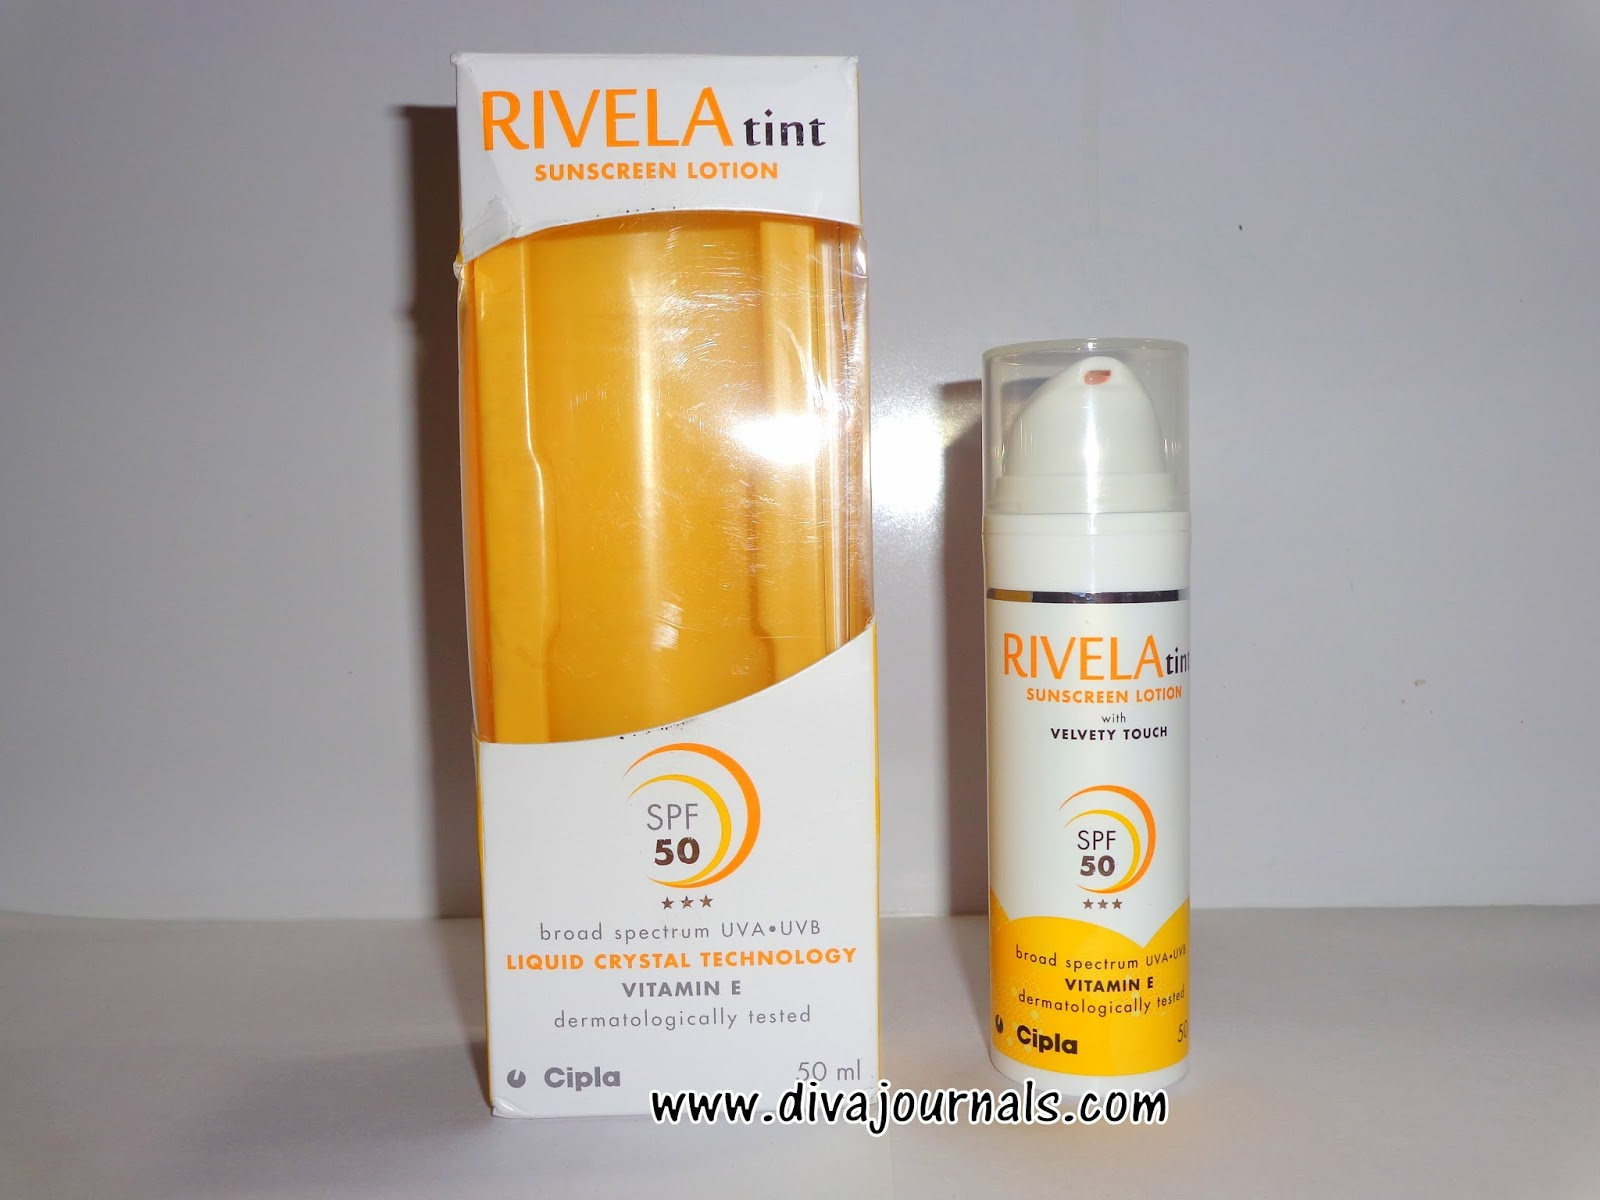 Rivela Tint Sunscreen Lotion SPF 50 Review